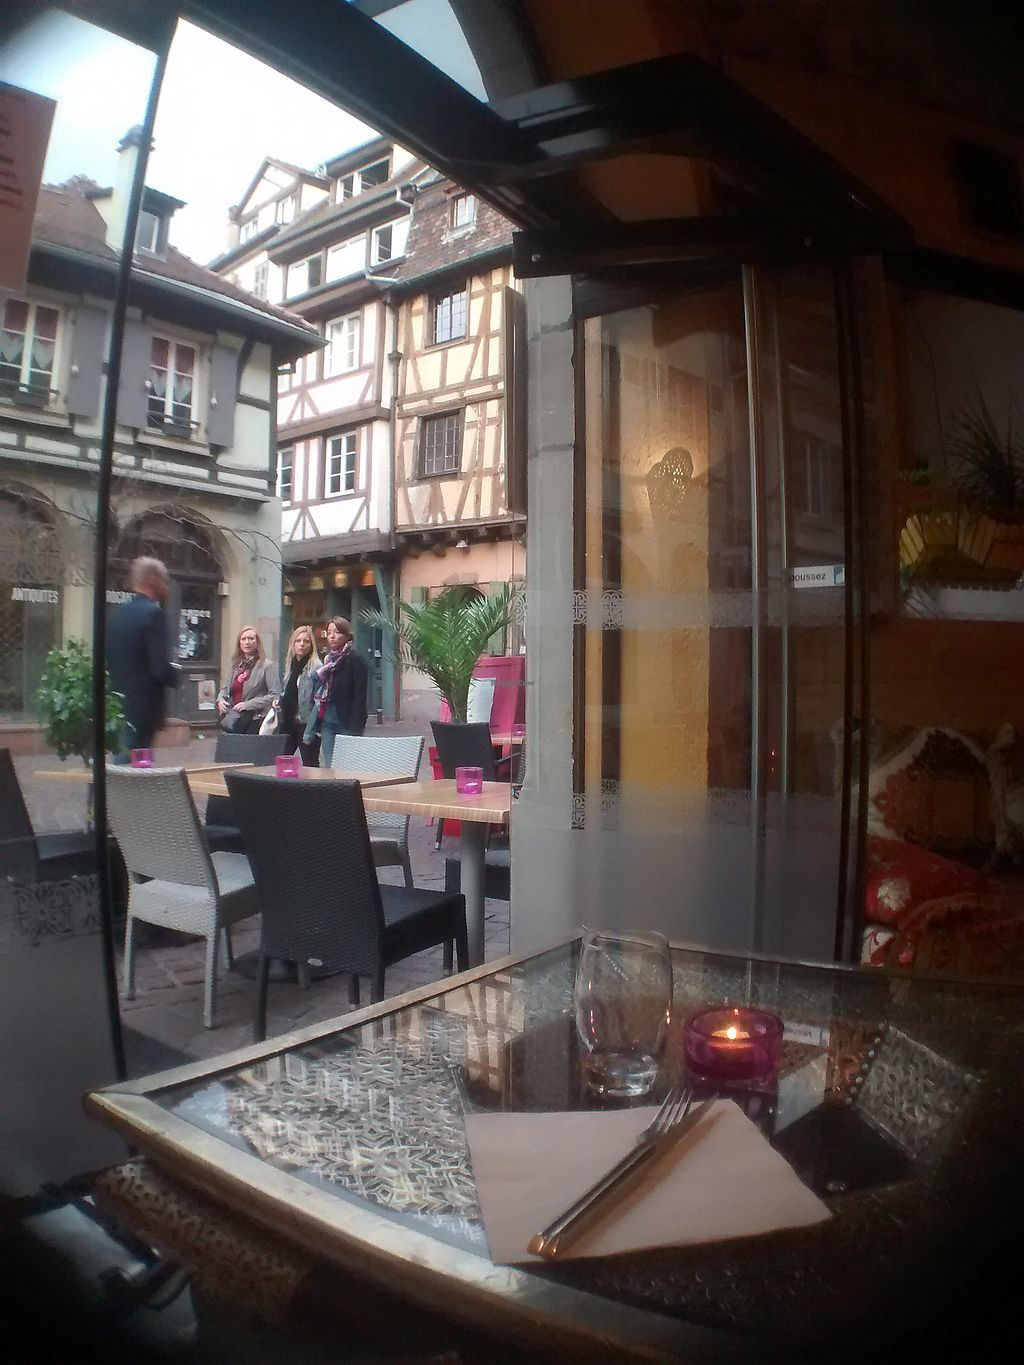 "Photo of Le Touareg  by <a href=""/members/profile/Thor"">Thor</a> <br/>A window seat at Le Touareg. The tables have an interesting Middle-Eastern pattern. The candles and other interior make for a cosy atmosphere <br/> September 18, 2017  - <a href='/contact/abuse/image/48649/305728'>Report</a>"